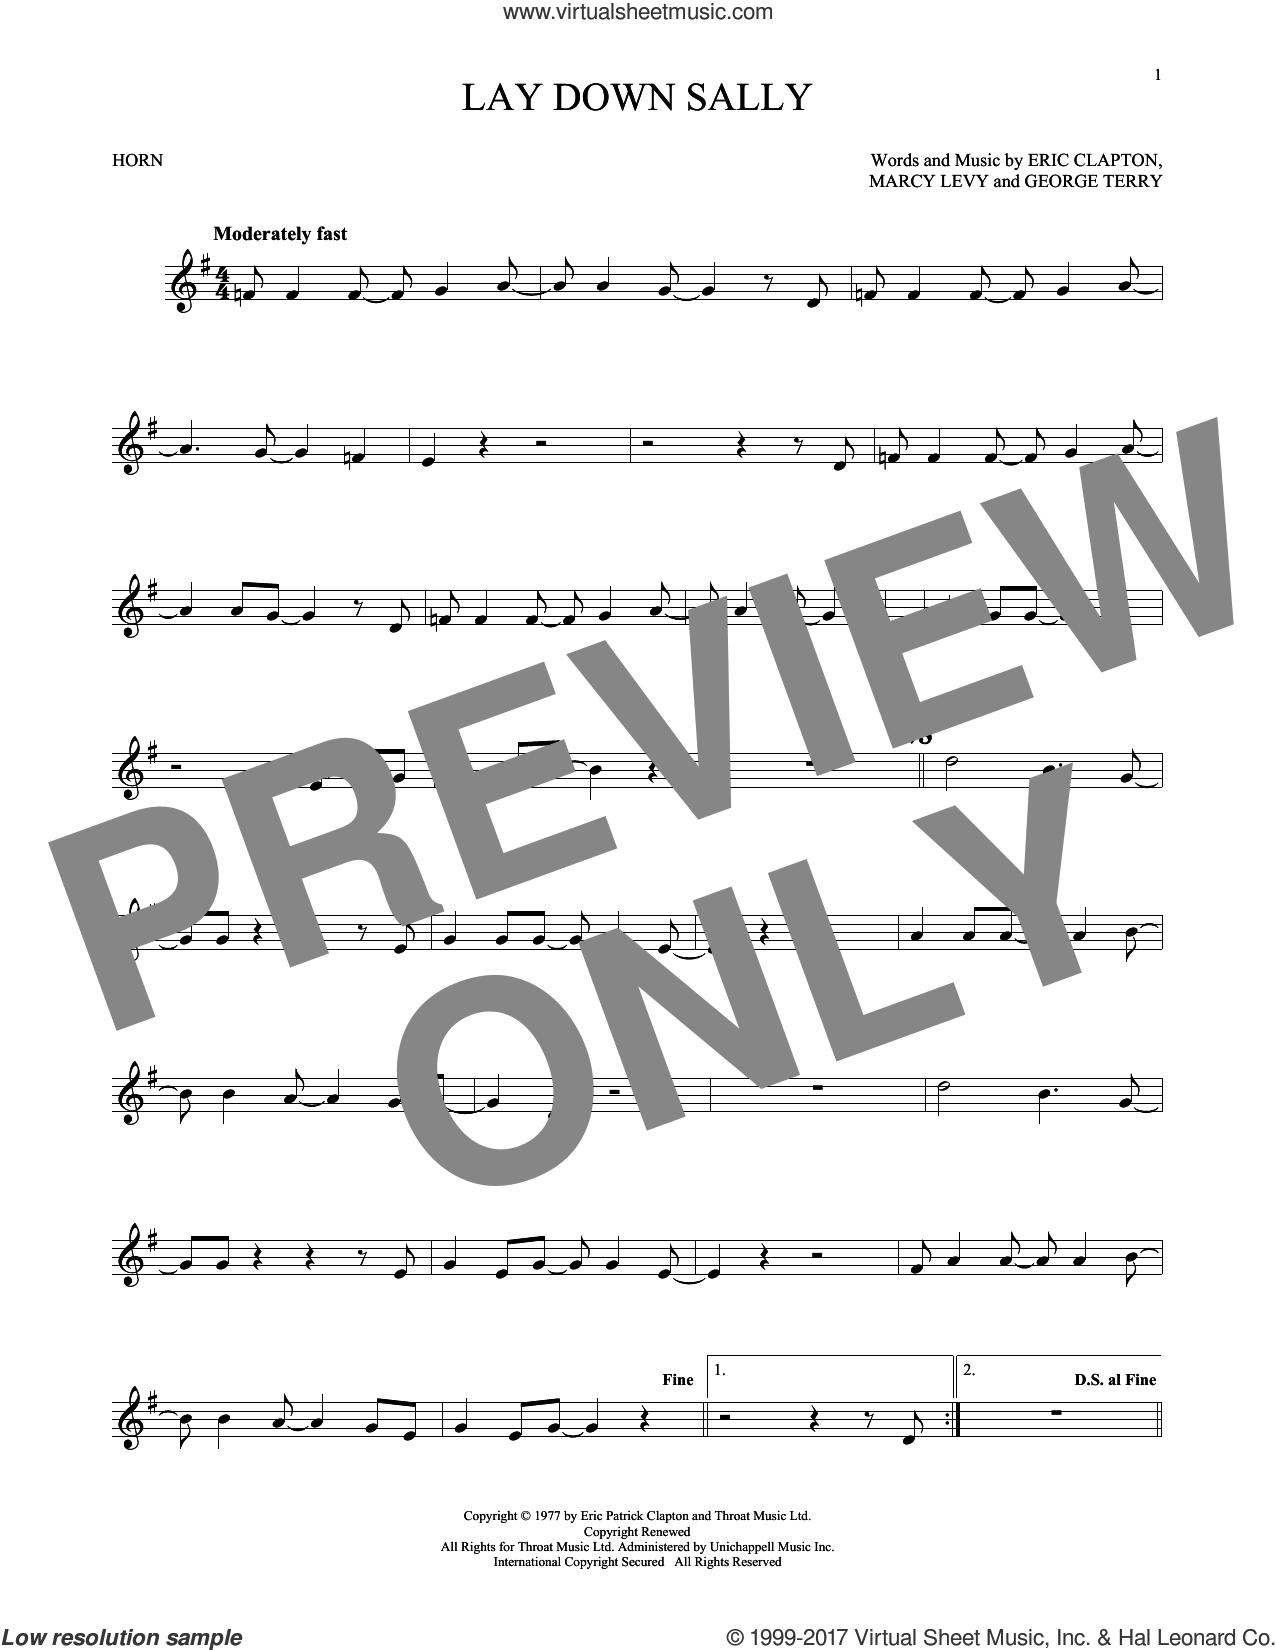 Lay Down Sally sheet music for horn solo by Eric Clapton, George Terry and Marcy Levy, intermediate skill level